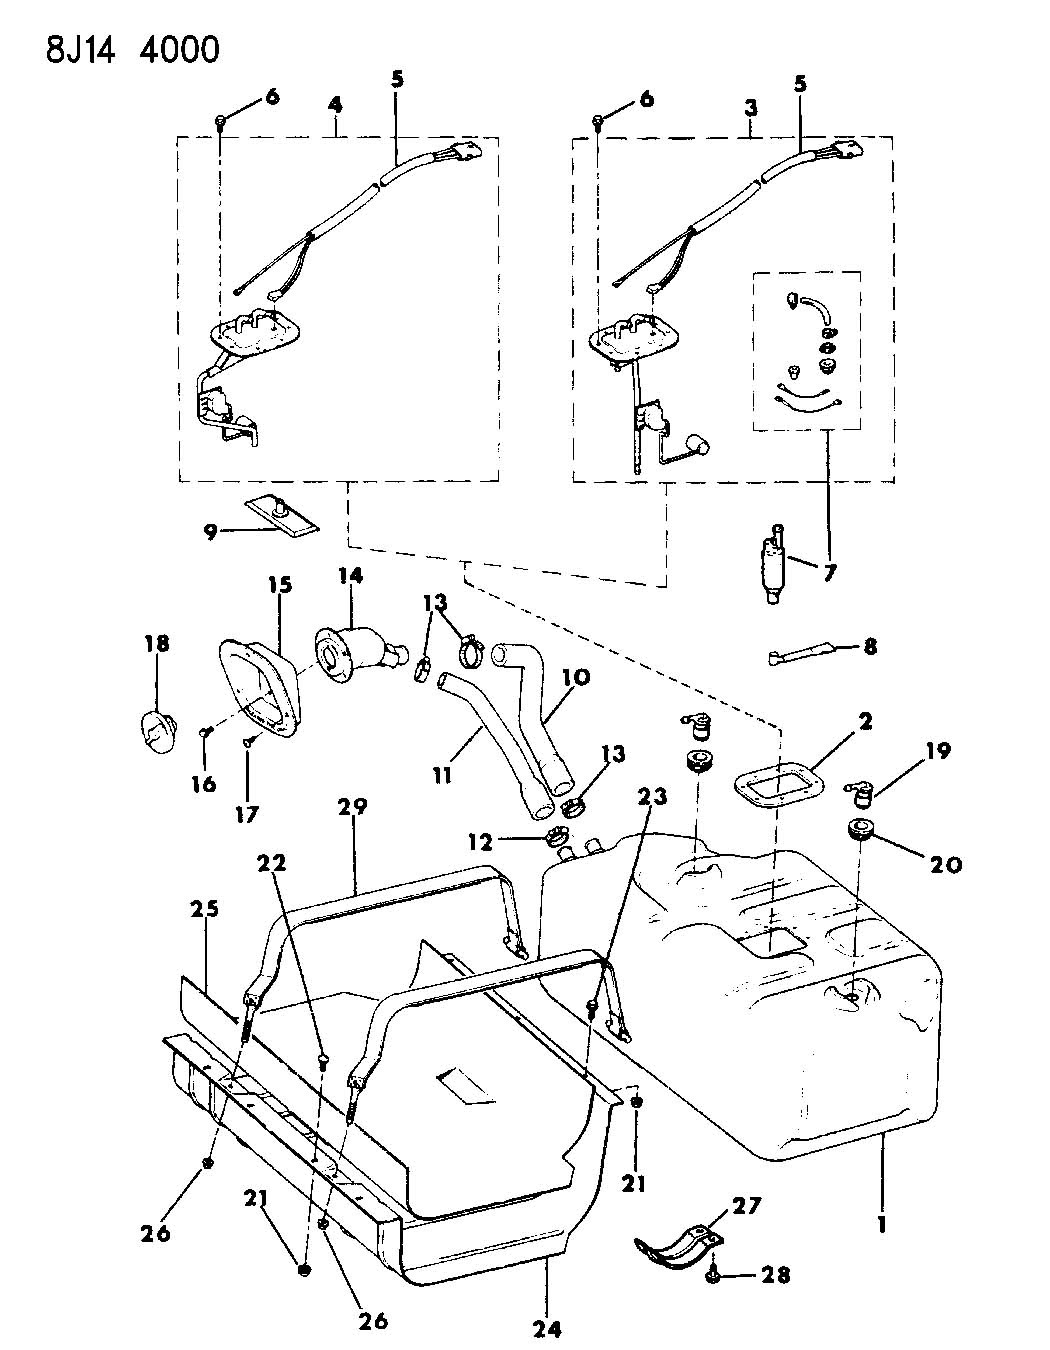 3d8 1994 Jeep Wrangler Tail Light Wiring Diagram Wiring Library